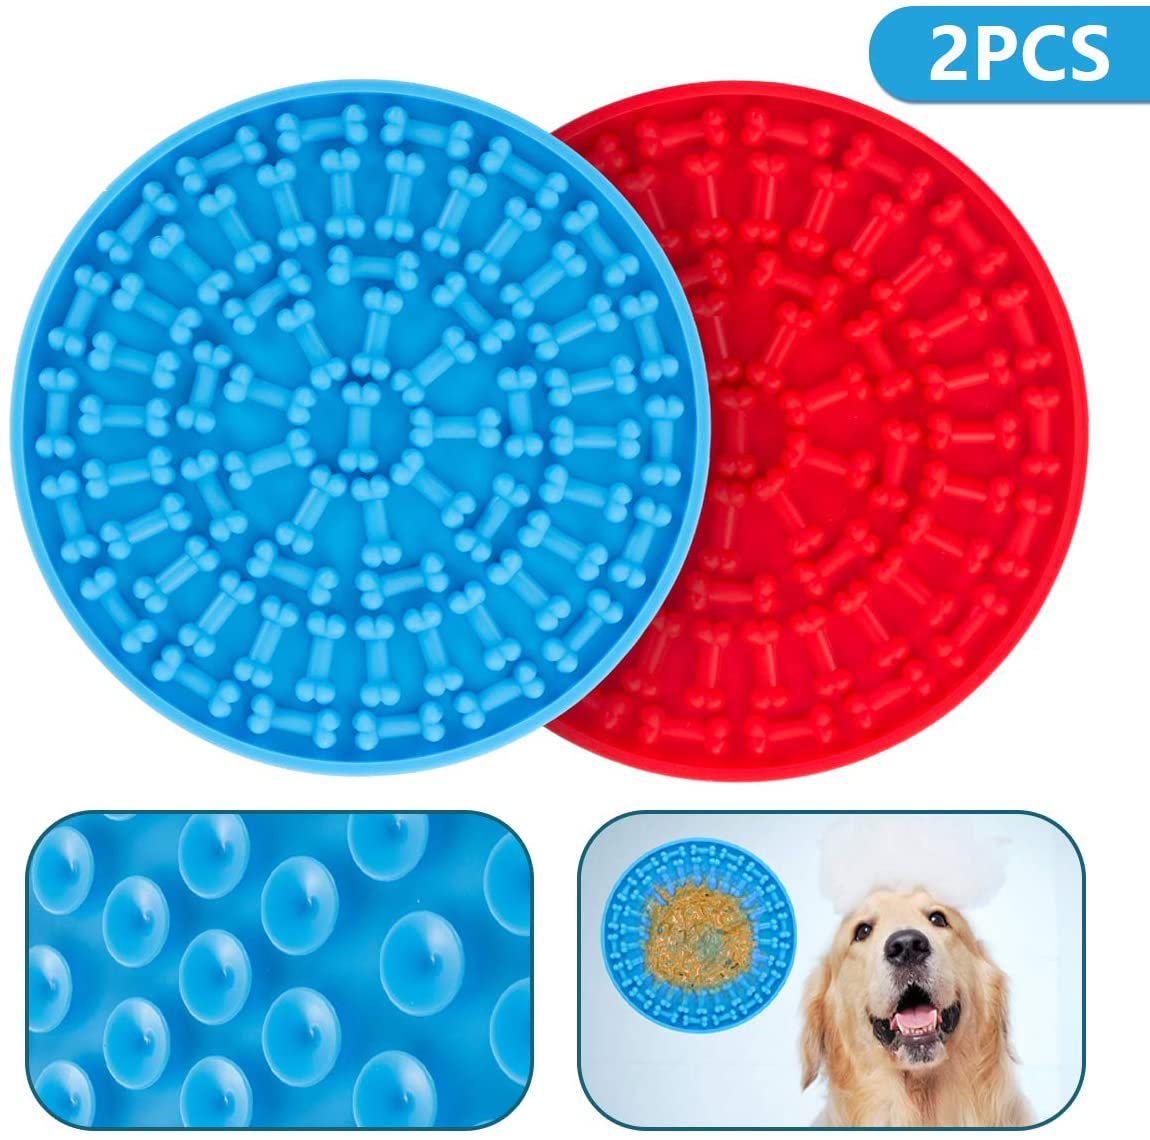 ST-Transfer Dog Lick Mat Pad Dogs Slow Eating Dispensing Treater Mat, Dog Washing Distraction Device with Super Suction for Pet Bathing, Grooming, Dog Training, and Dog Treats